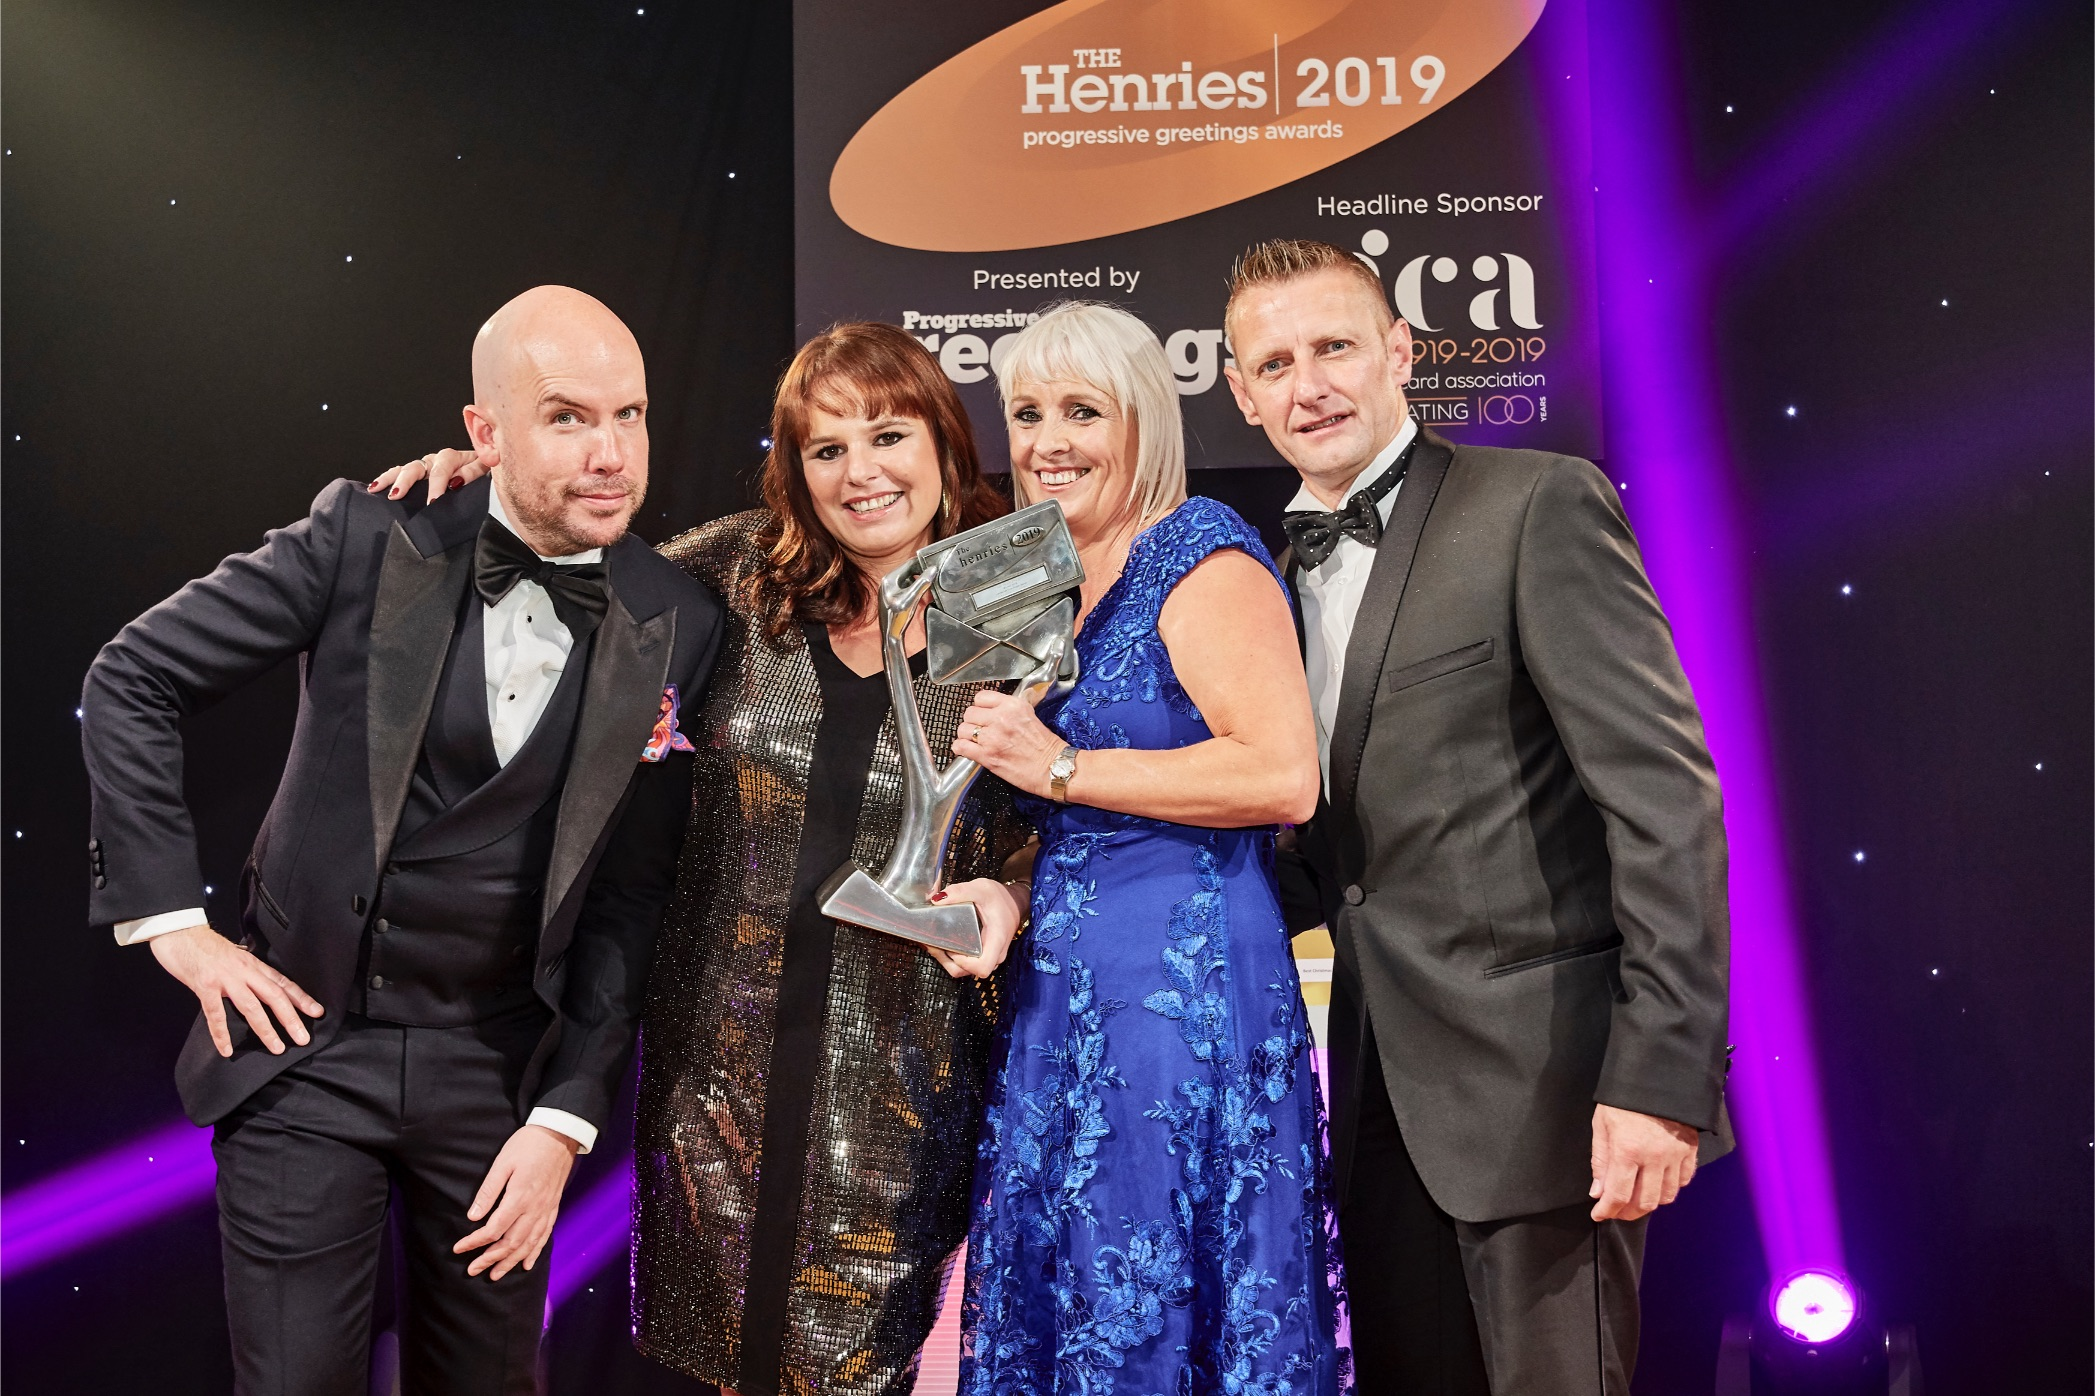 Above: Having reached the finals in several categories this year, Paper Salad co-owners Claire Williams (second left) and Karen Wilson are hoping for a repeat of last year's Henries. They were presented with this 2019 trophy by (far right) Tony Lorriman, md of Loxleys (which has pledged its support for the 'virtual' Henries this year) and Tom Allen, host for last year's event.